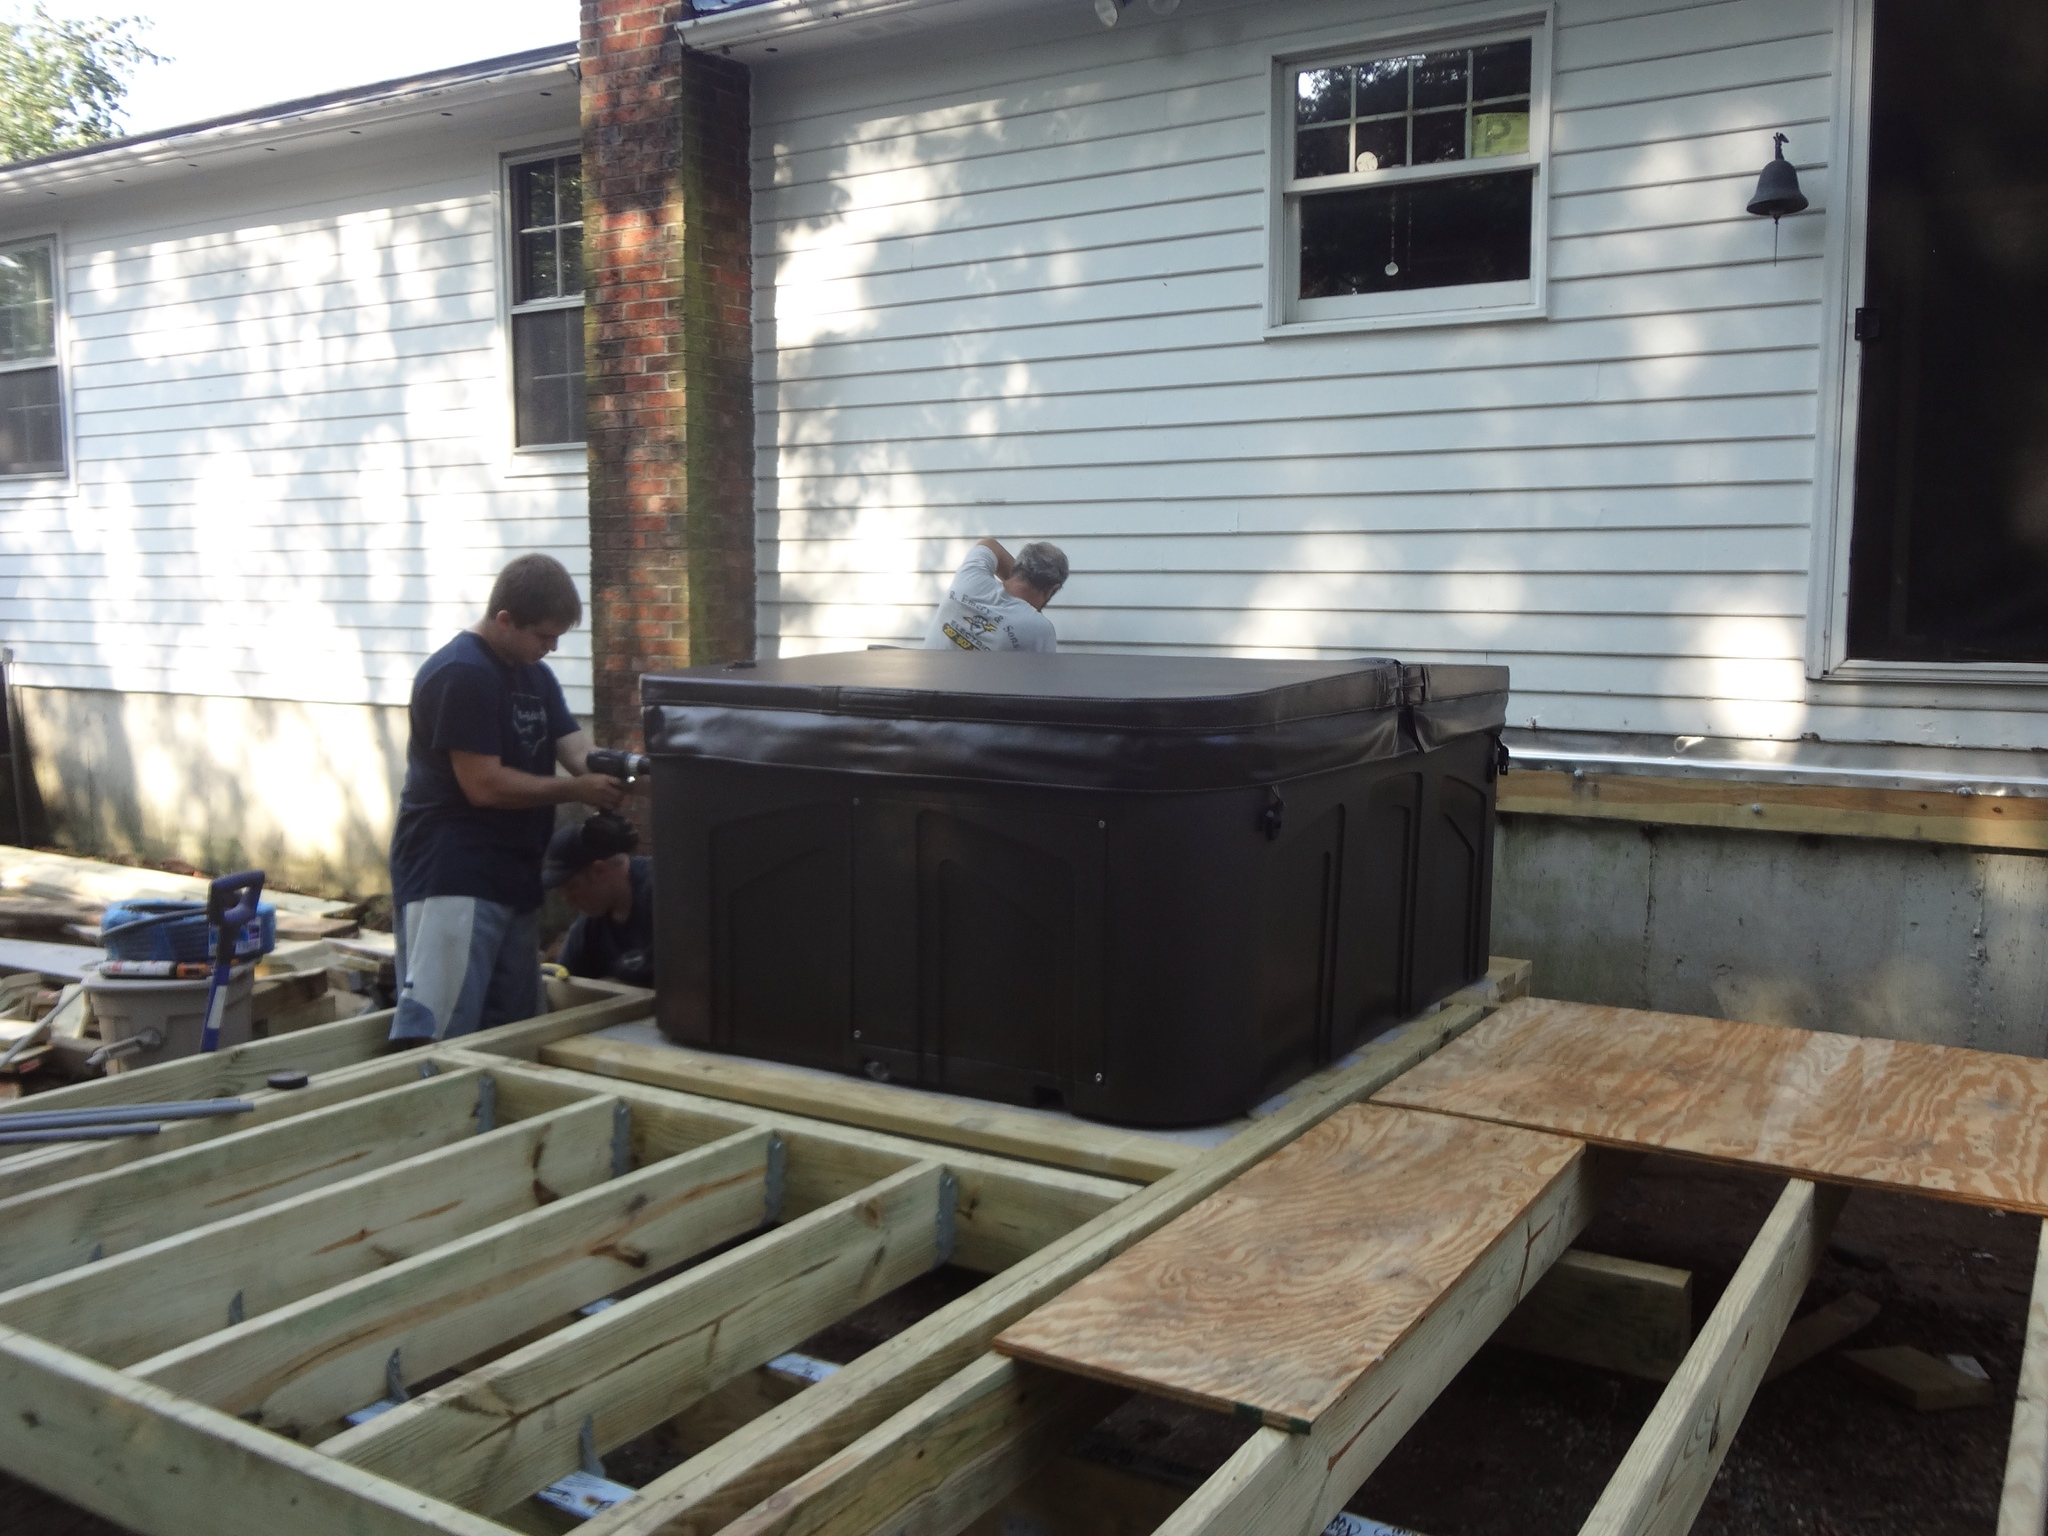 we got the lower deck framed just in time for the hot tub to be delivered the electrician arrived at the same time to add a dedicated circuit and move the